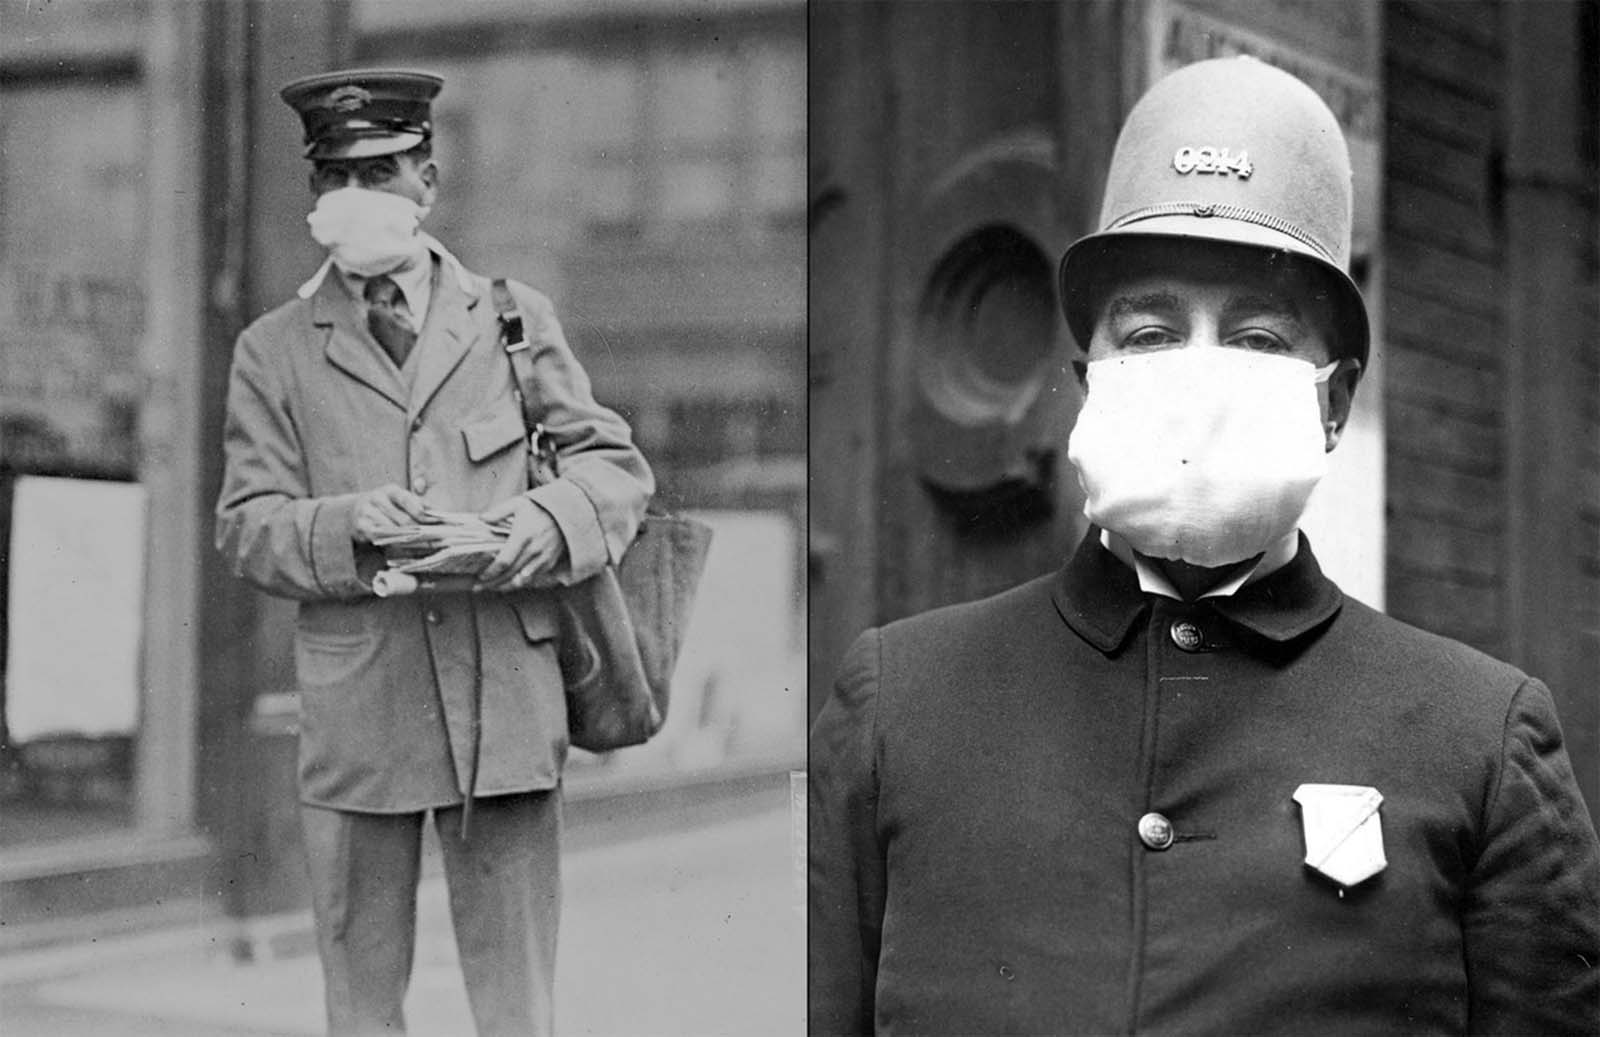 Left: A letter carrier in New York City, October, 1918. Right: Thousands of these masks were distributed by policemen to all police stations, to be used whenever duty called in New York City.